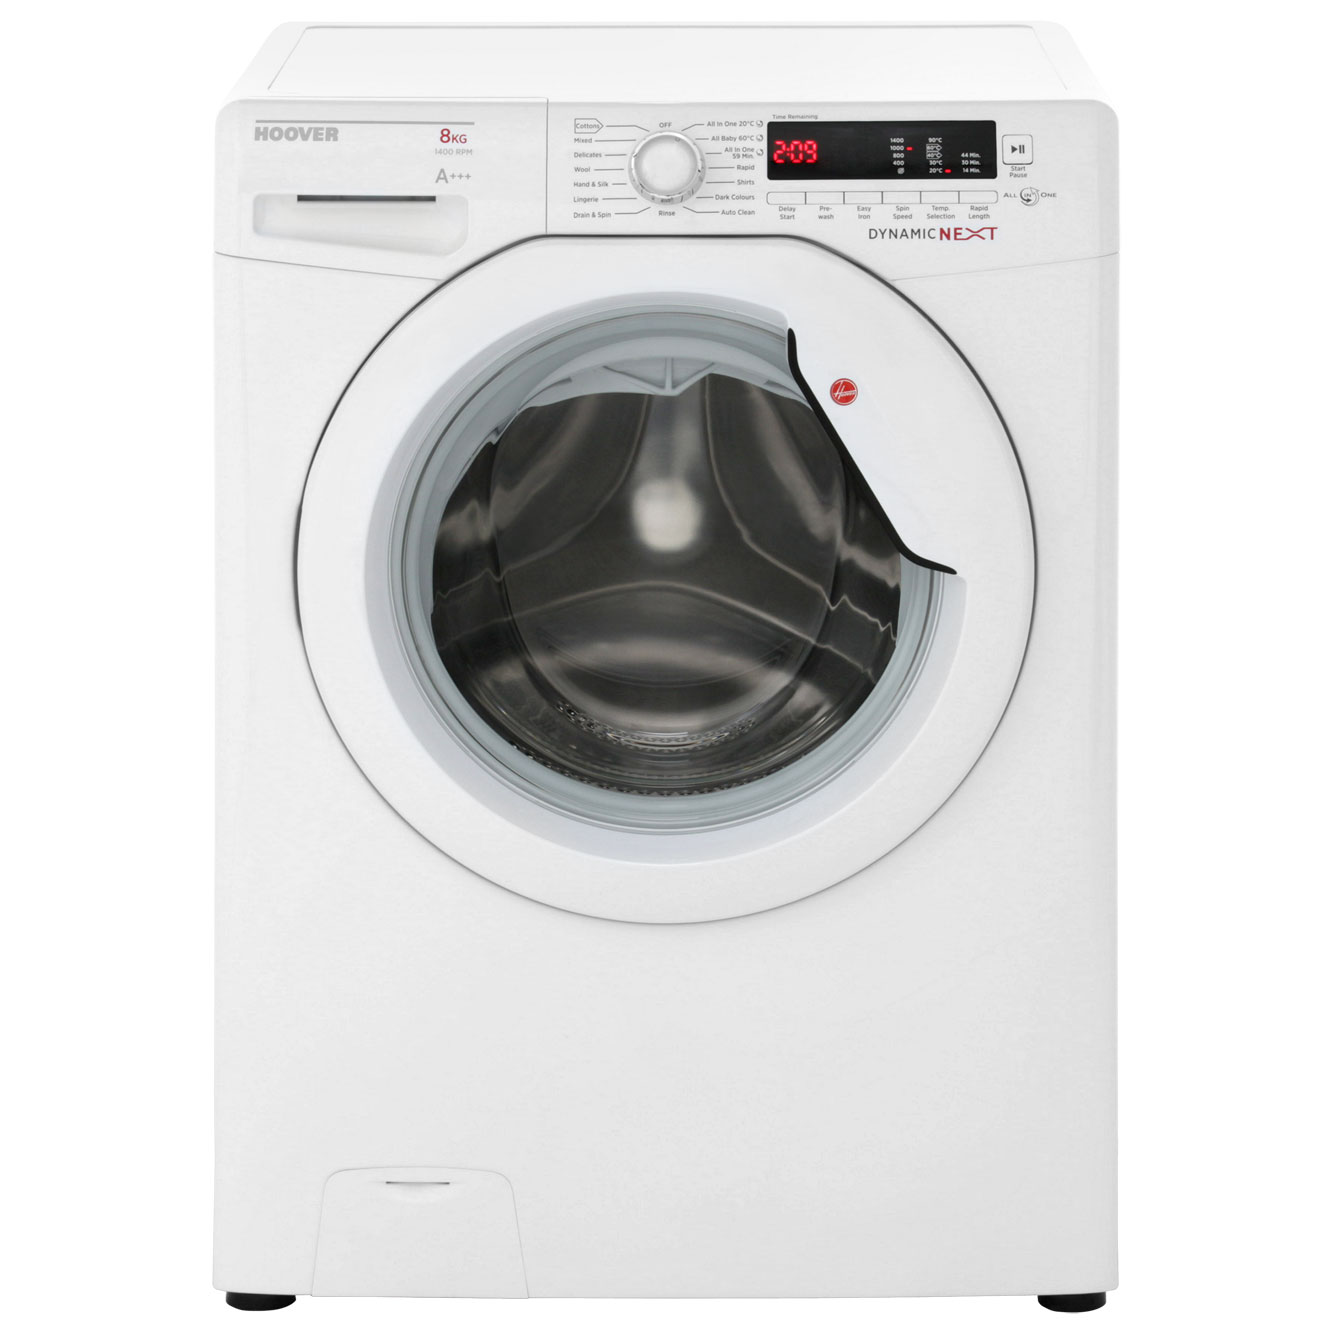 Hoover Dynamic Next DXCE48AW3 8Kg Washing Machine with 1400 rpm - White